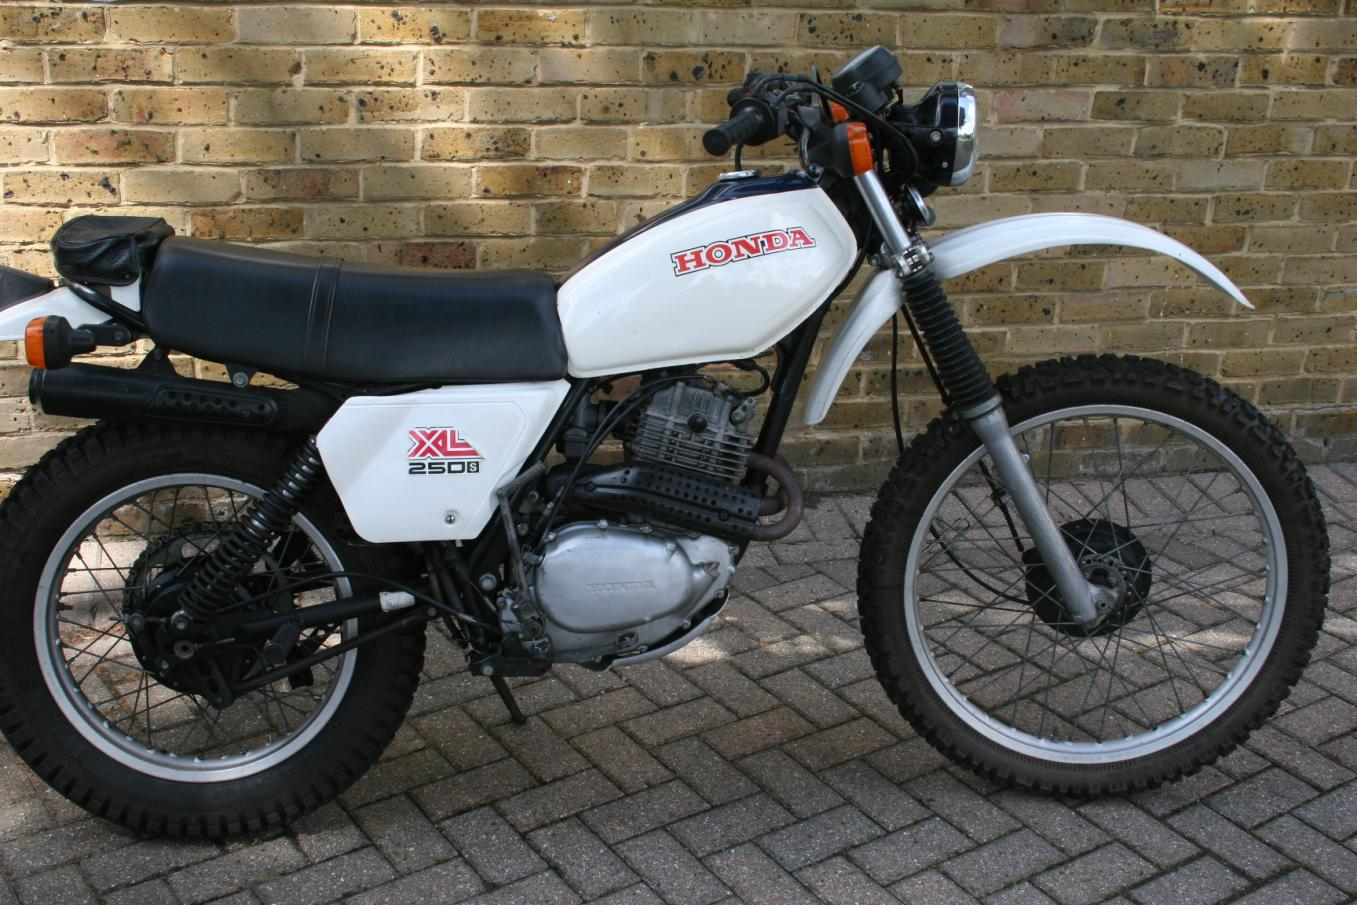 honda xl 100 specs with 1980 Honda Xl 250 2kx7nqeprlekifmmsf9lg  7cgwxvuesalvstmltimnkm on Honda xl 600 r 1986 moreover Reference further International Harvester Farmall 806 856 1206 1256 And 1456 Factory Service Manual Js Ih S 806 Plus further Graphite also 2017 Ford Ranger Px Mkii Wildtrak Utility Double Cab 4dr Man 6sp 4x4 3.